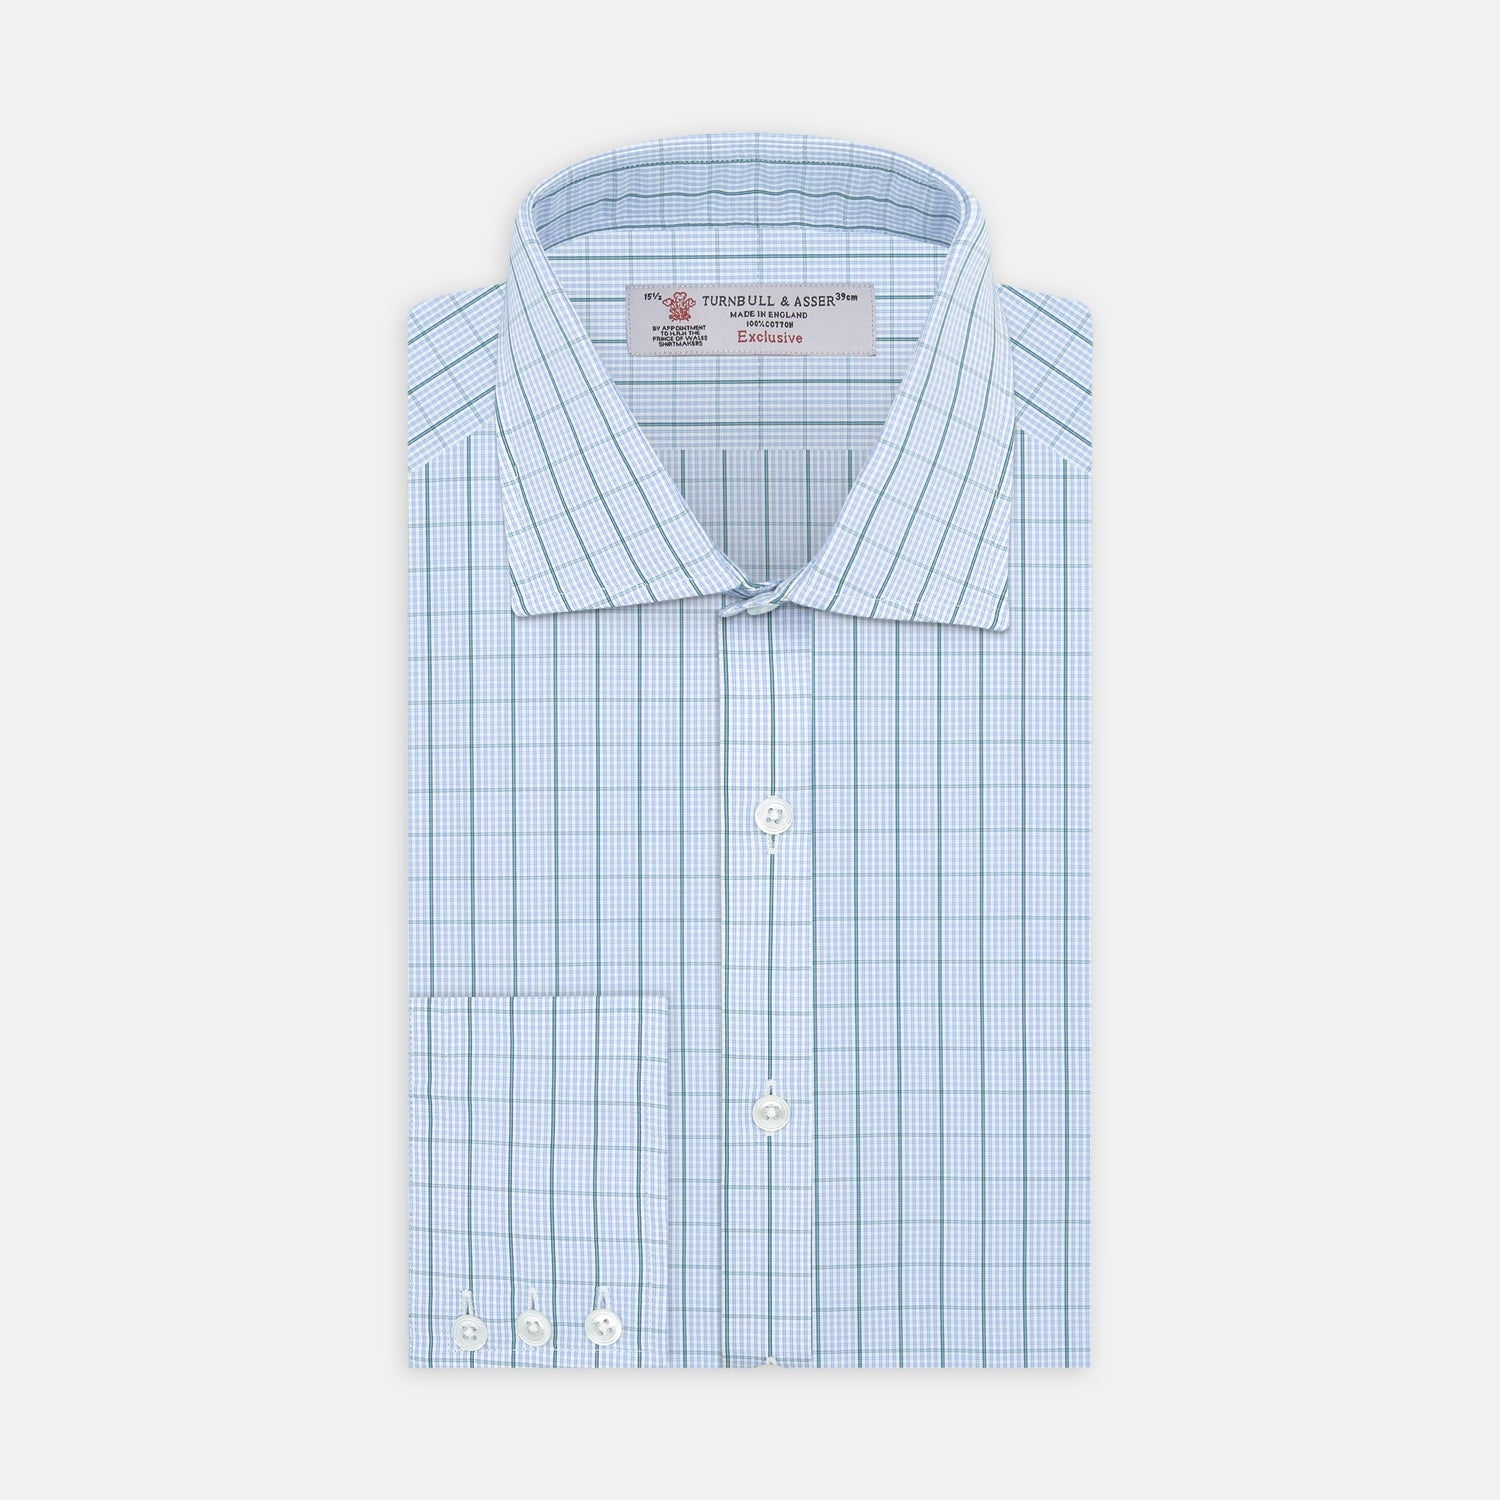 Sky Blue and Turquoise Pin Check Shirt with Regent Collar and 3-Button Cuffs - 15.0 from Turnbull & Asser